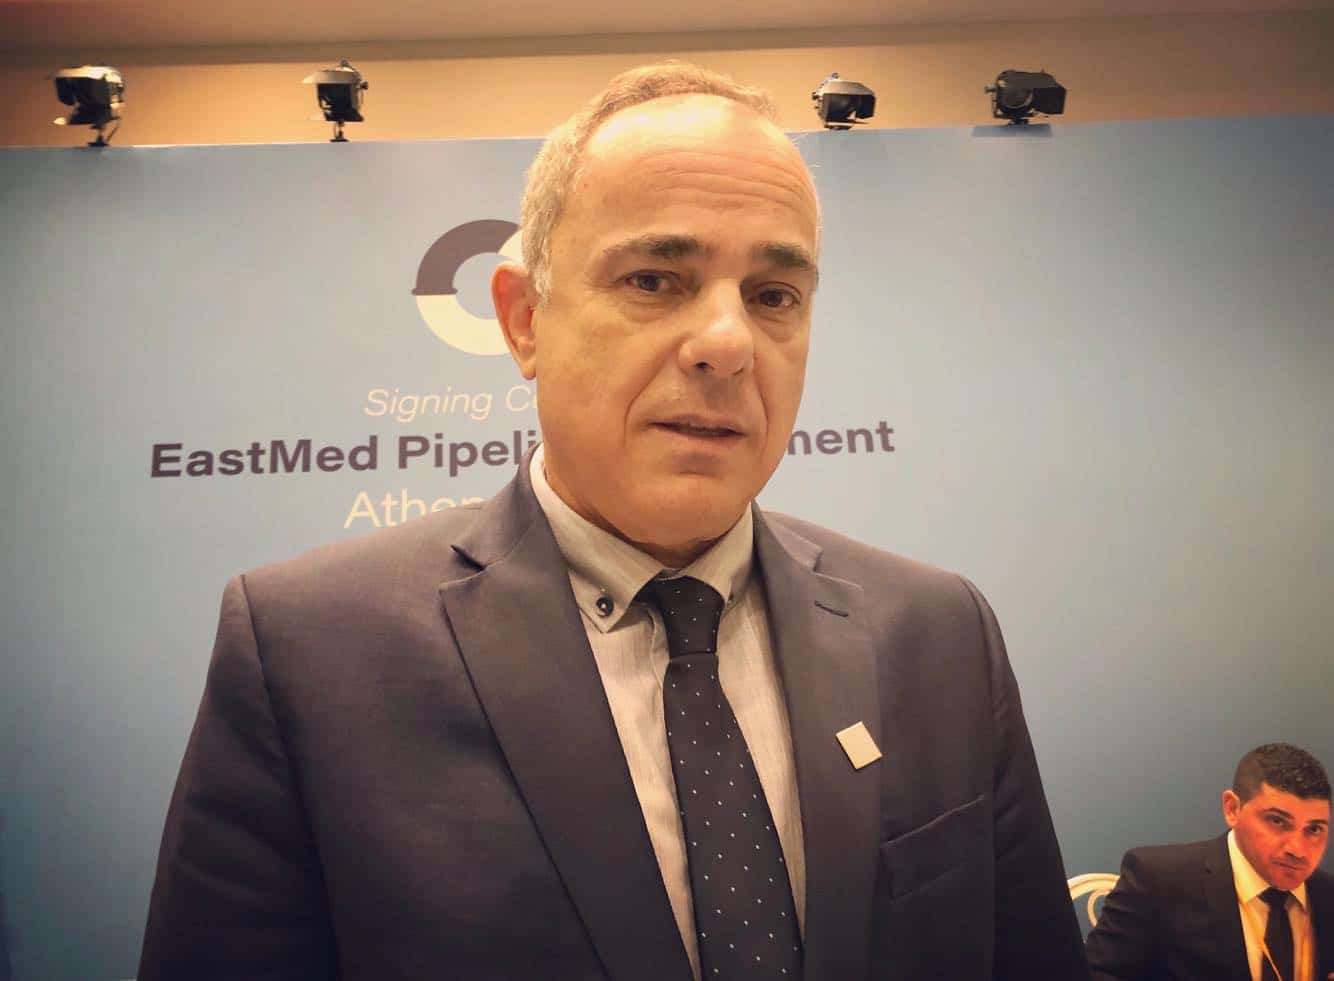 Israeli 1 - Steinitz confident Israel and Cyprus can supply EastMed pipeline